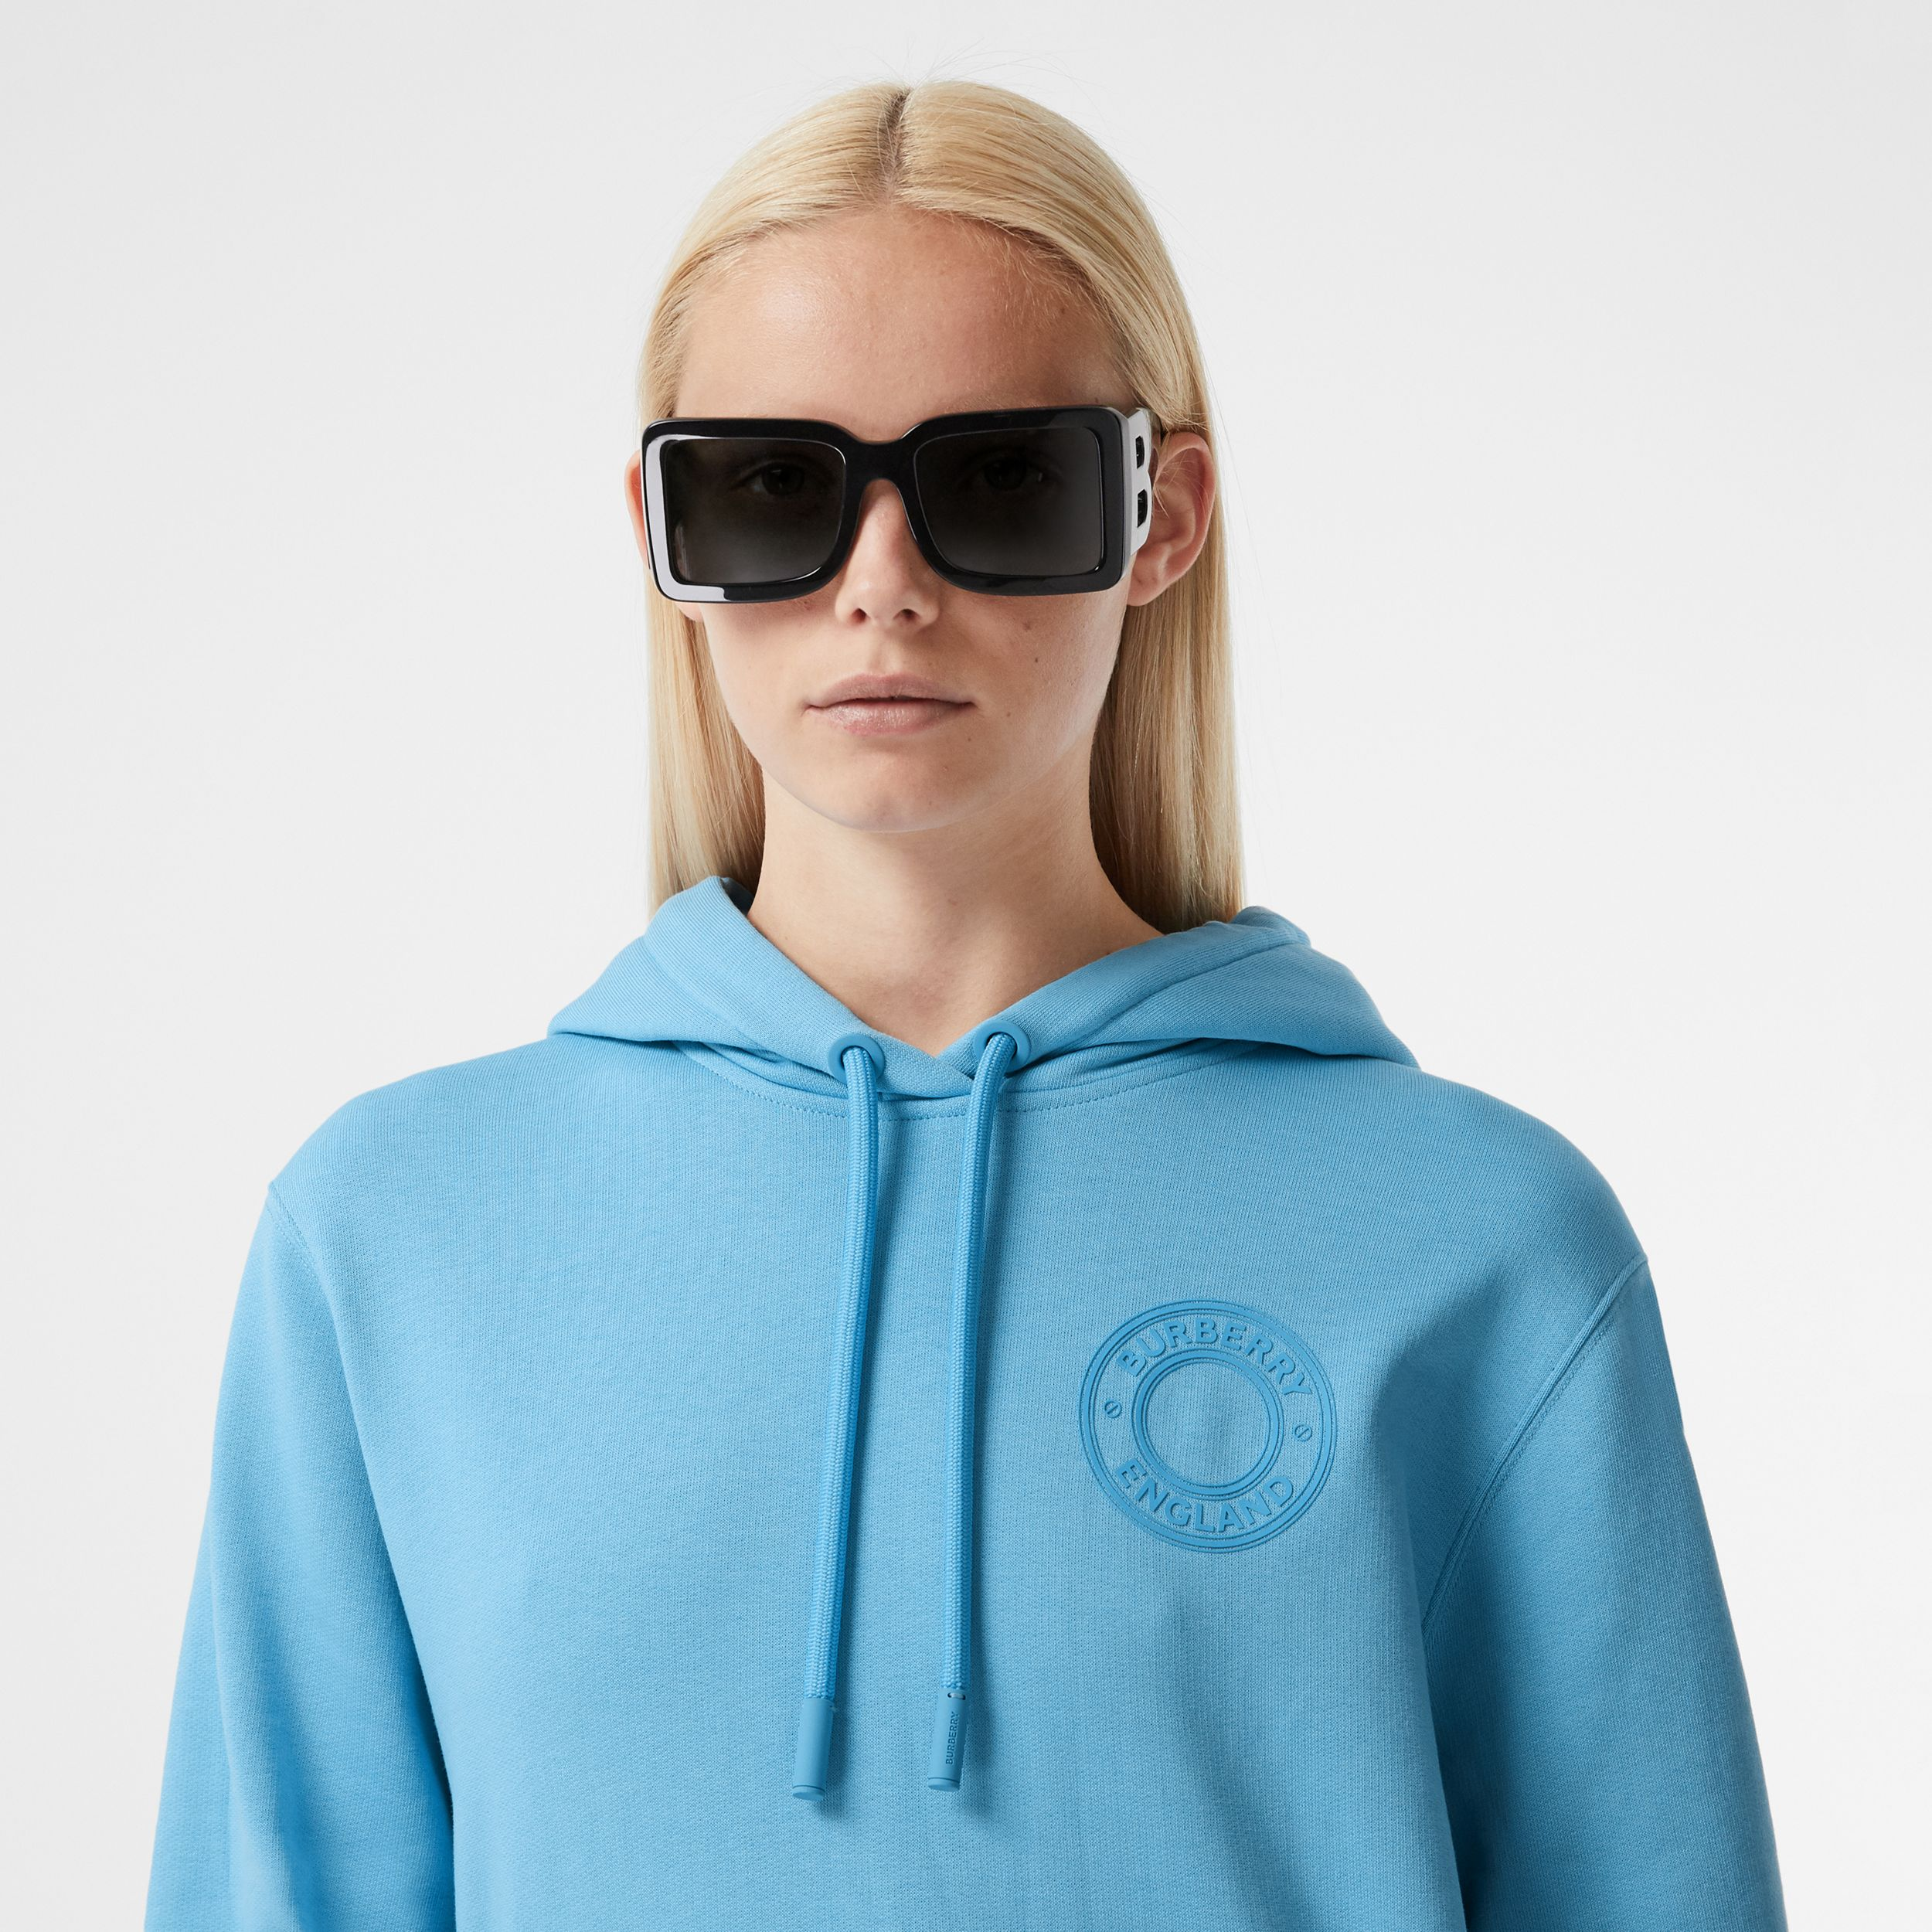 Logo Graphic Cotton Oversized Hoodie in Blue Topaz - Women | Burberry - 2